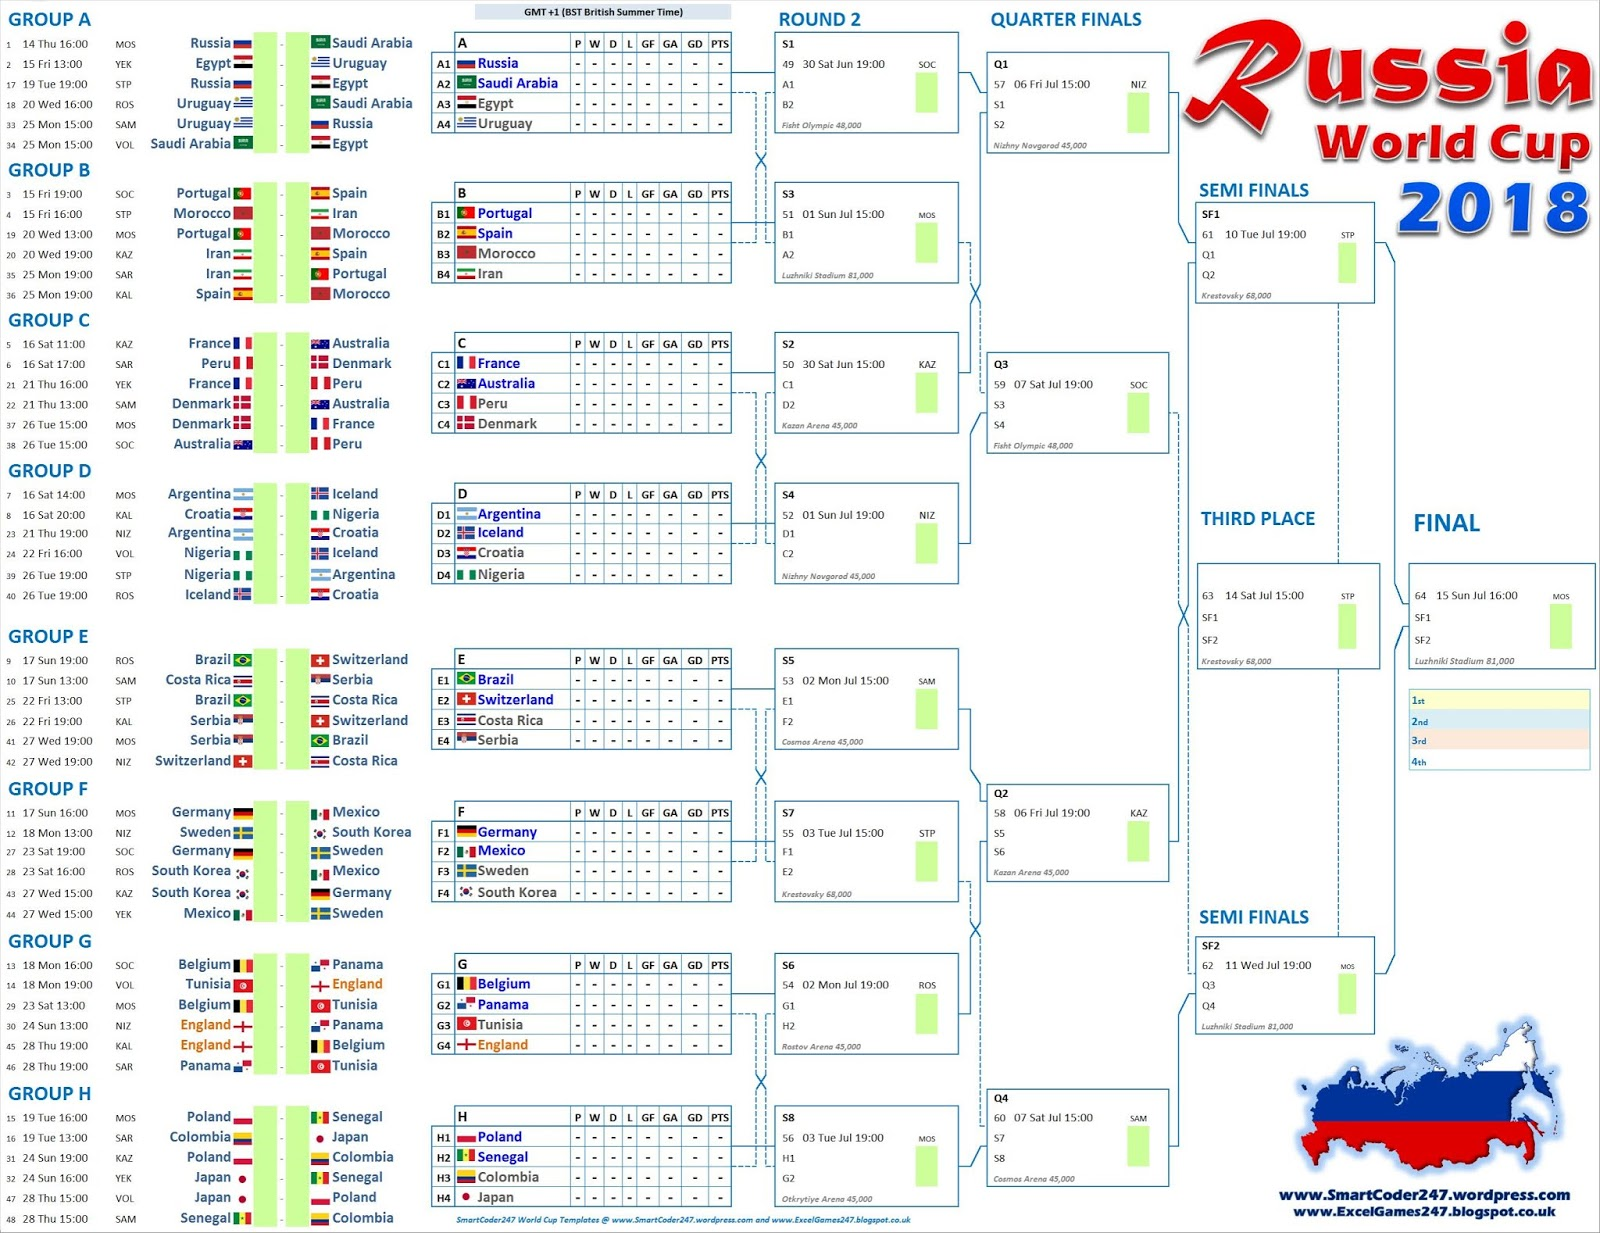 Predictions for 2018 for Russia 63